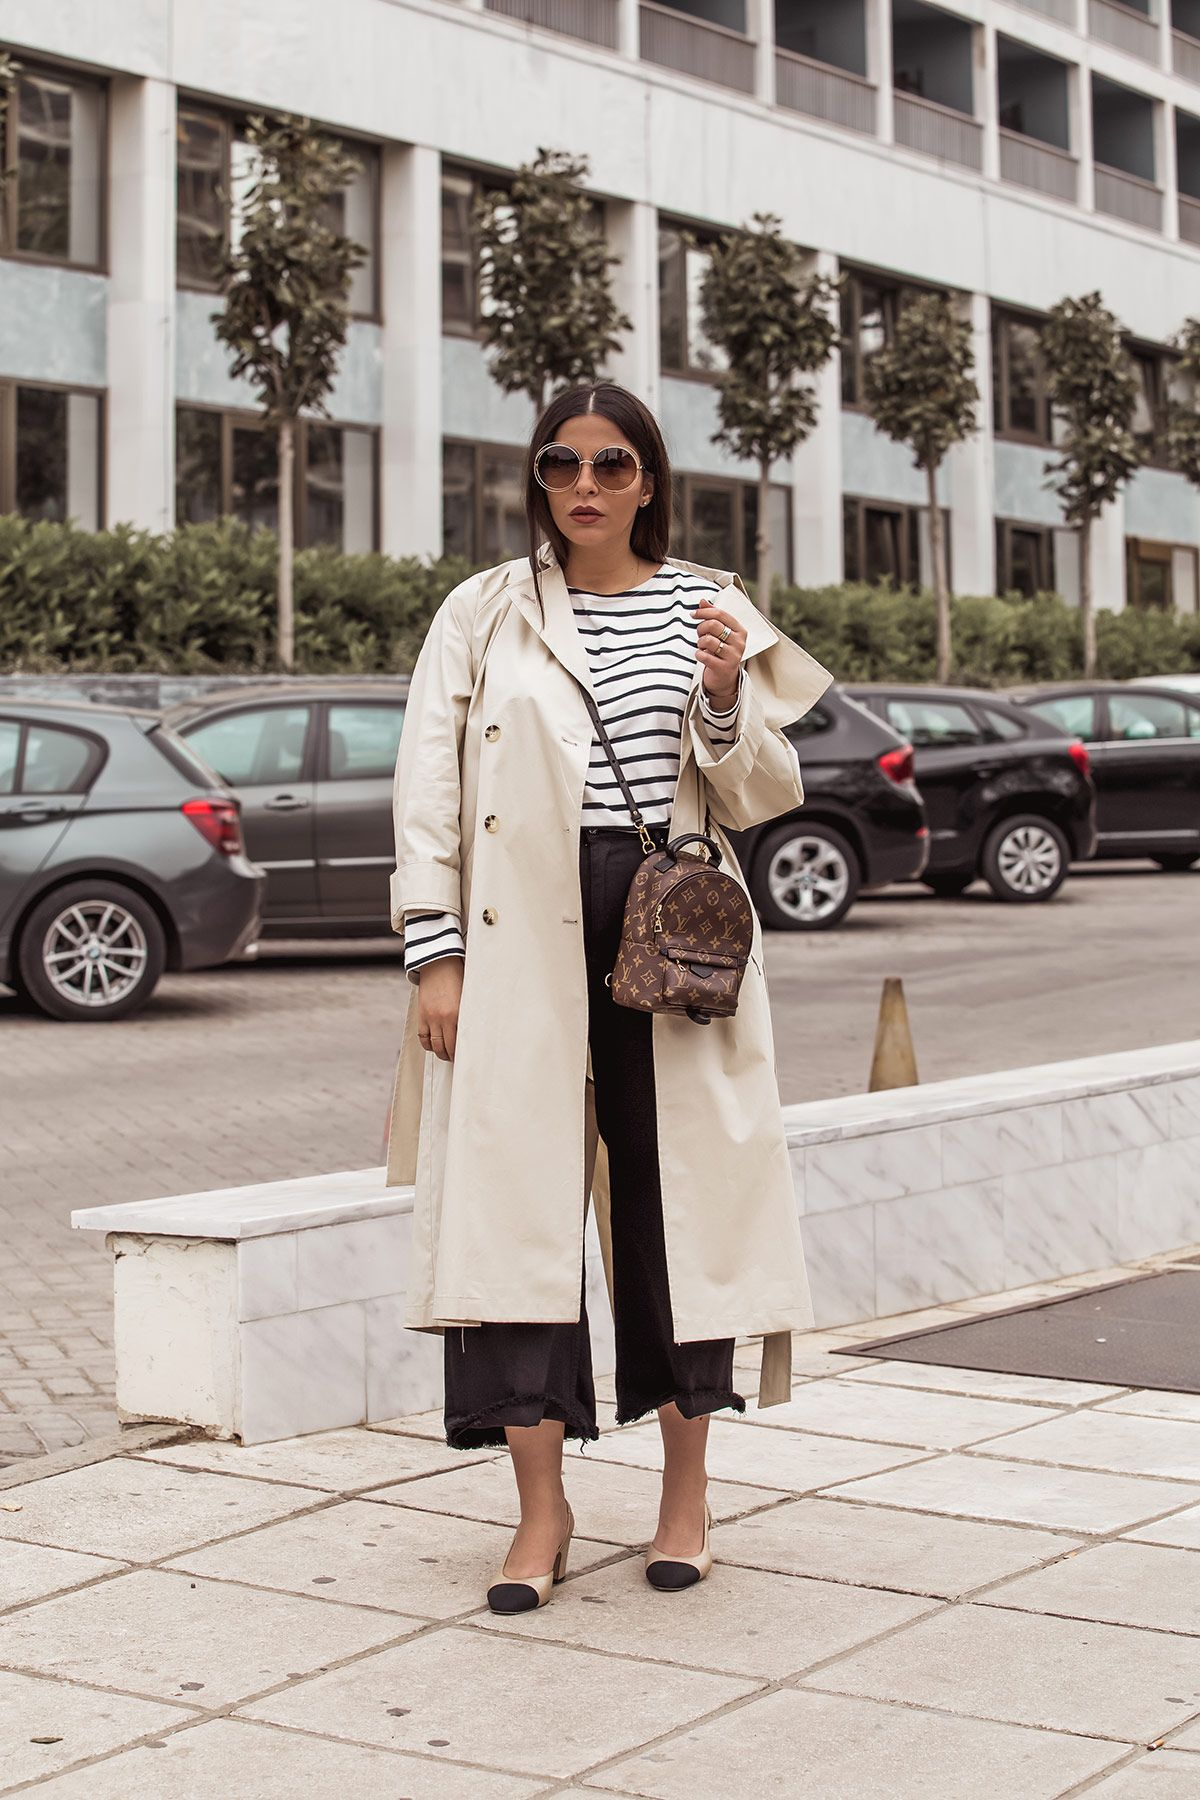 c5a1a5ca36 ... beige trench coat, breton top, Louis Vuitton Palm Springs backpack as a  cross body, black denim culottes, Chanel slingbacks and Chloe Carlina  sunglasses